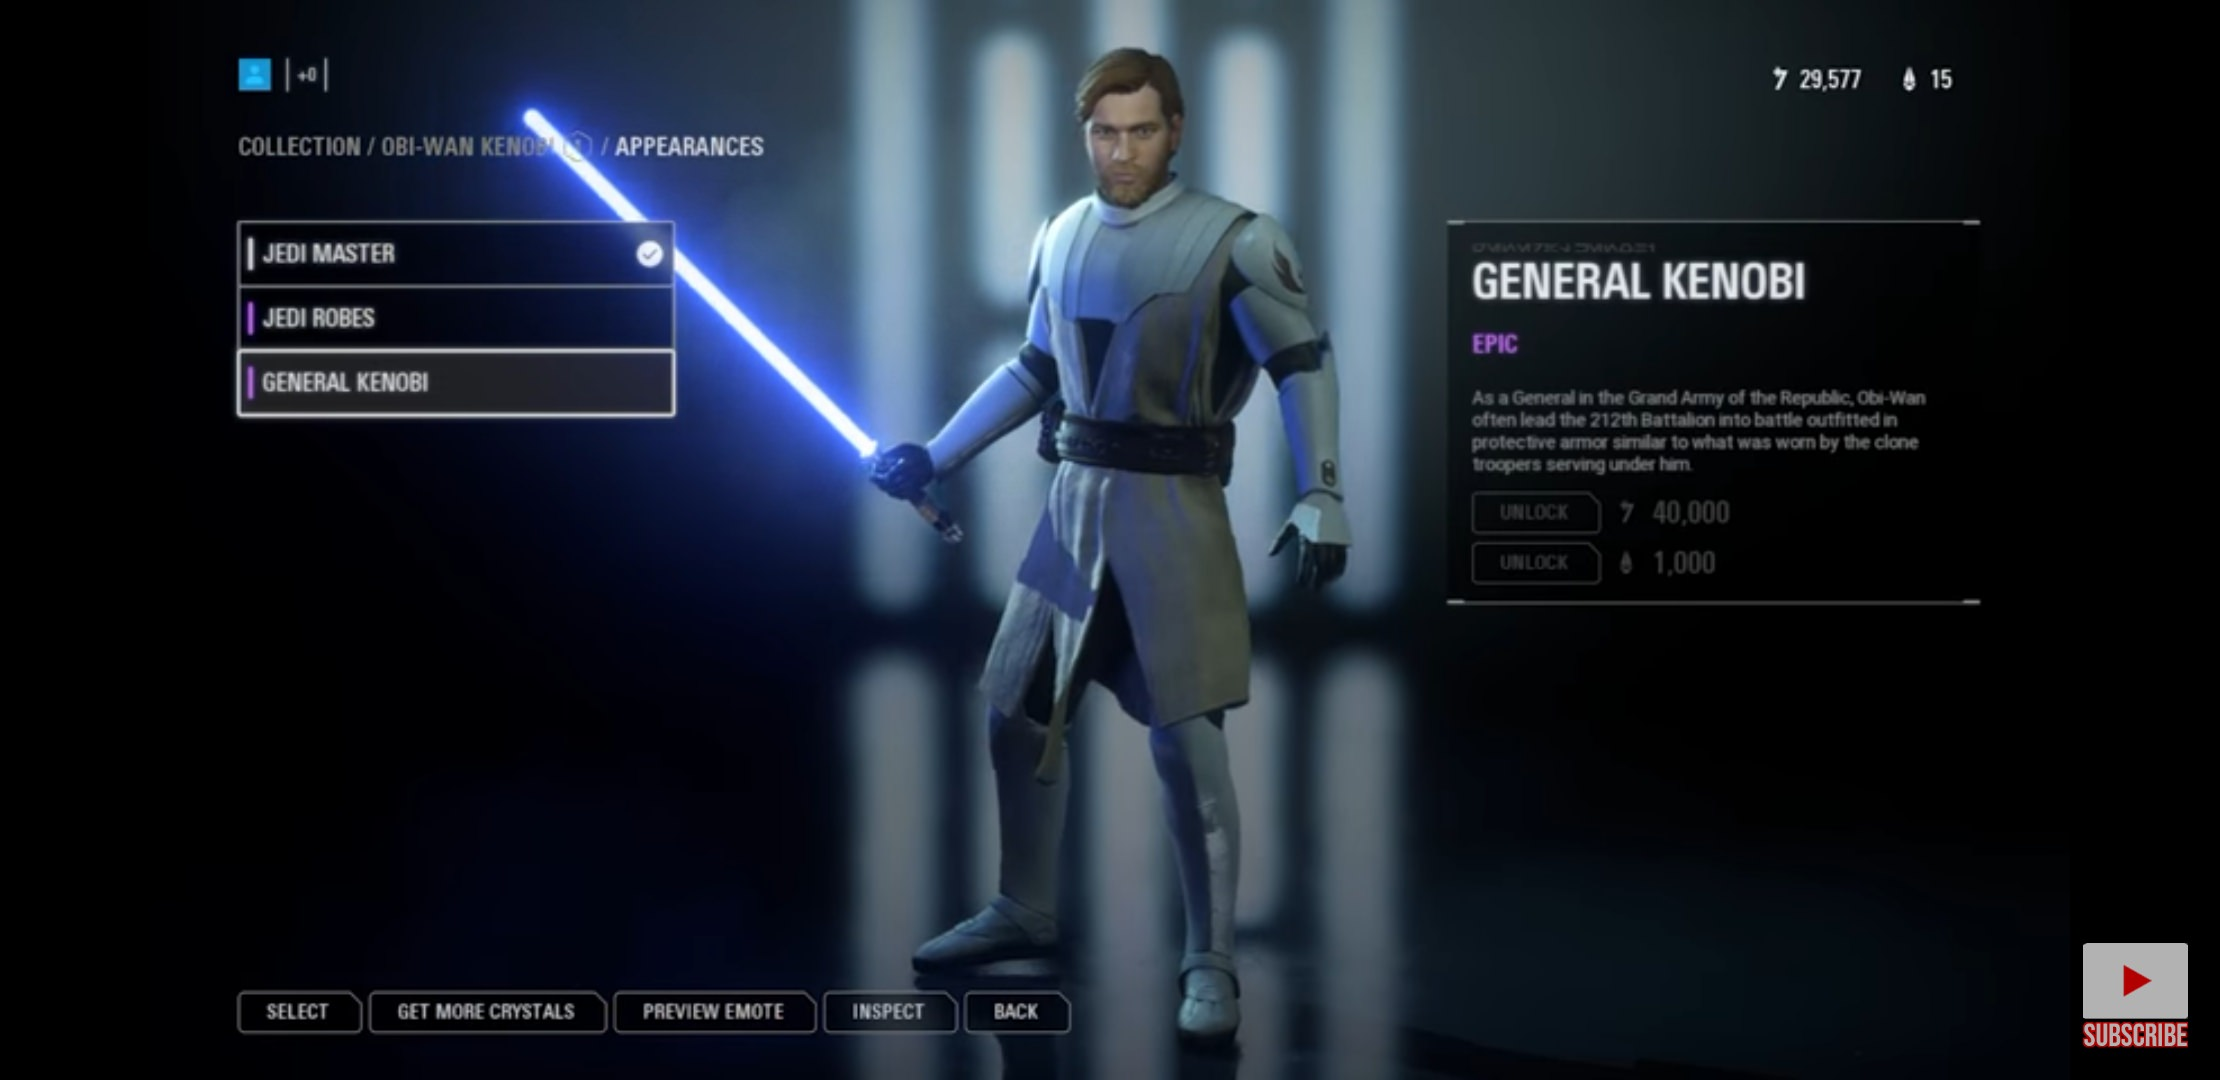 Battlefront 2 General Kenobi appearance